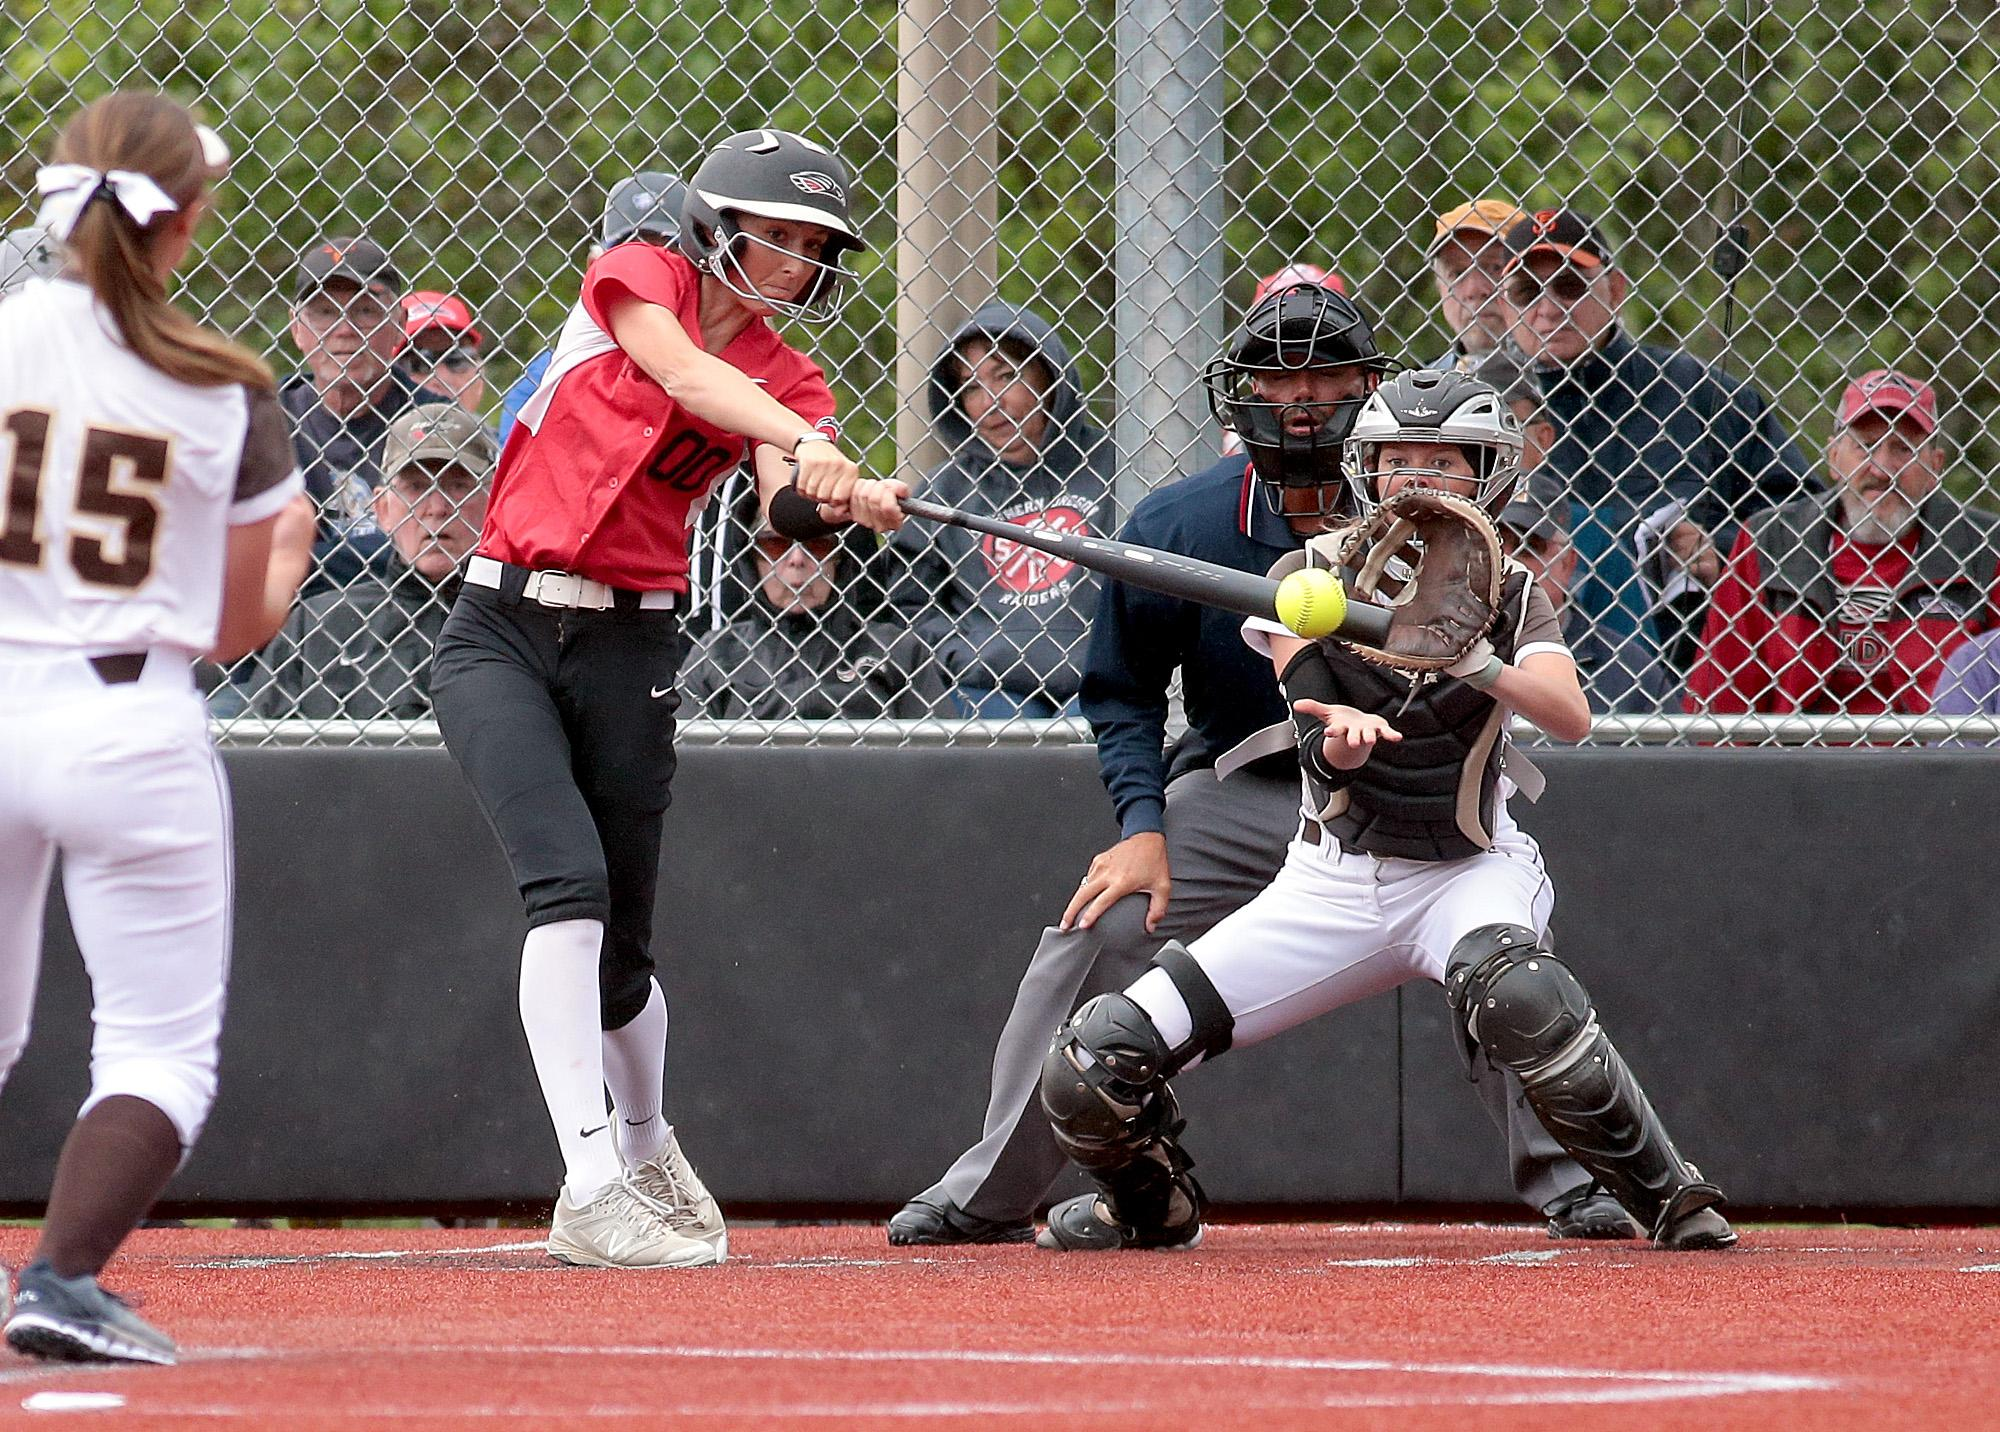 Larry Stauth Jr./For the Daily TidingsSouthern Oregon University freshman second baseman Hannah Shimek was one of the offensive catalysts during the Raiders' NAIA Opening Round showing earlier this week at U.S. Cellular Community Park in Medford.